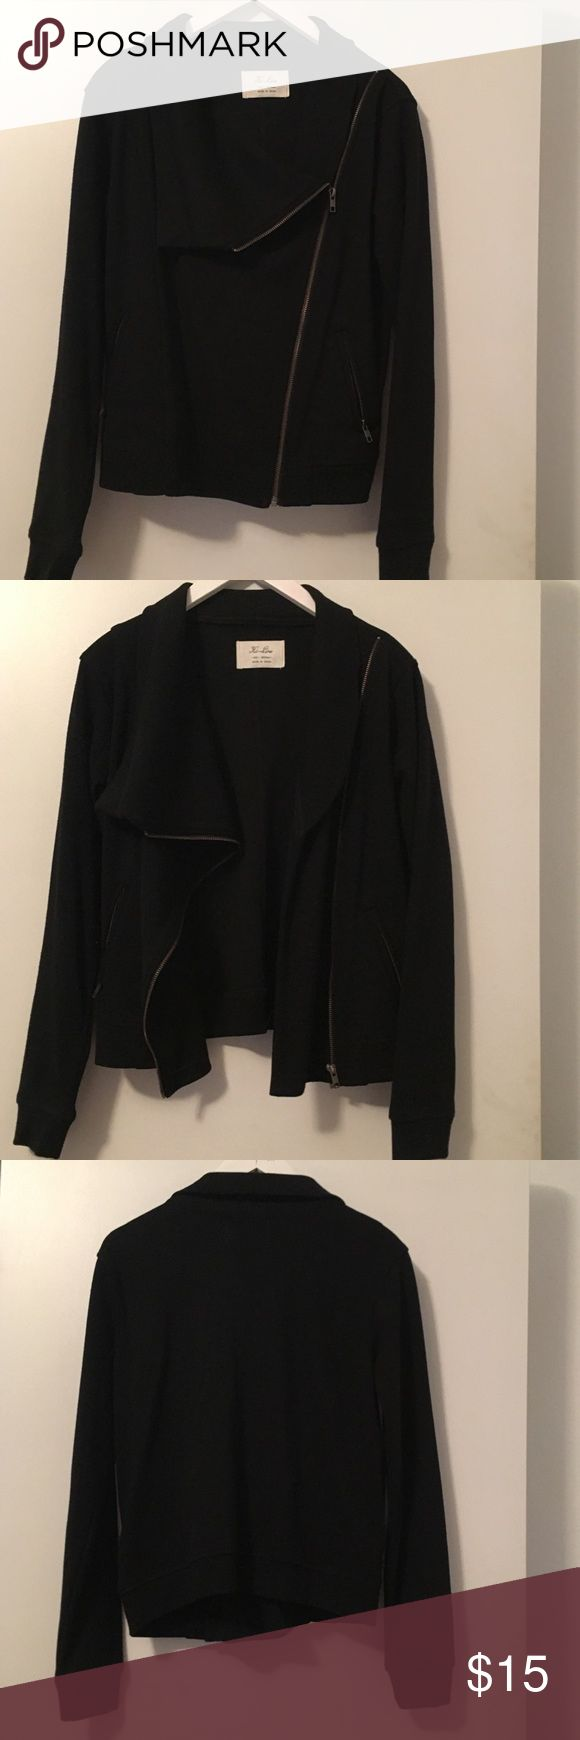 Hi-Line Moto Wool blend Knit Jacket Sz M Purchased at Madewell in Atlanta, it's a great Moto inspired jacket with zip details. Madewell Jackets & Coats